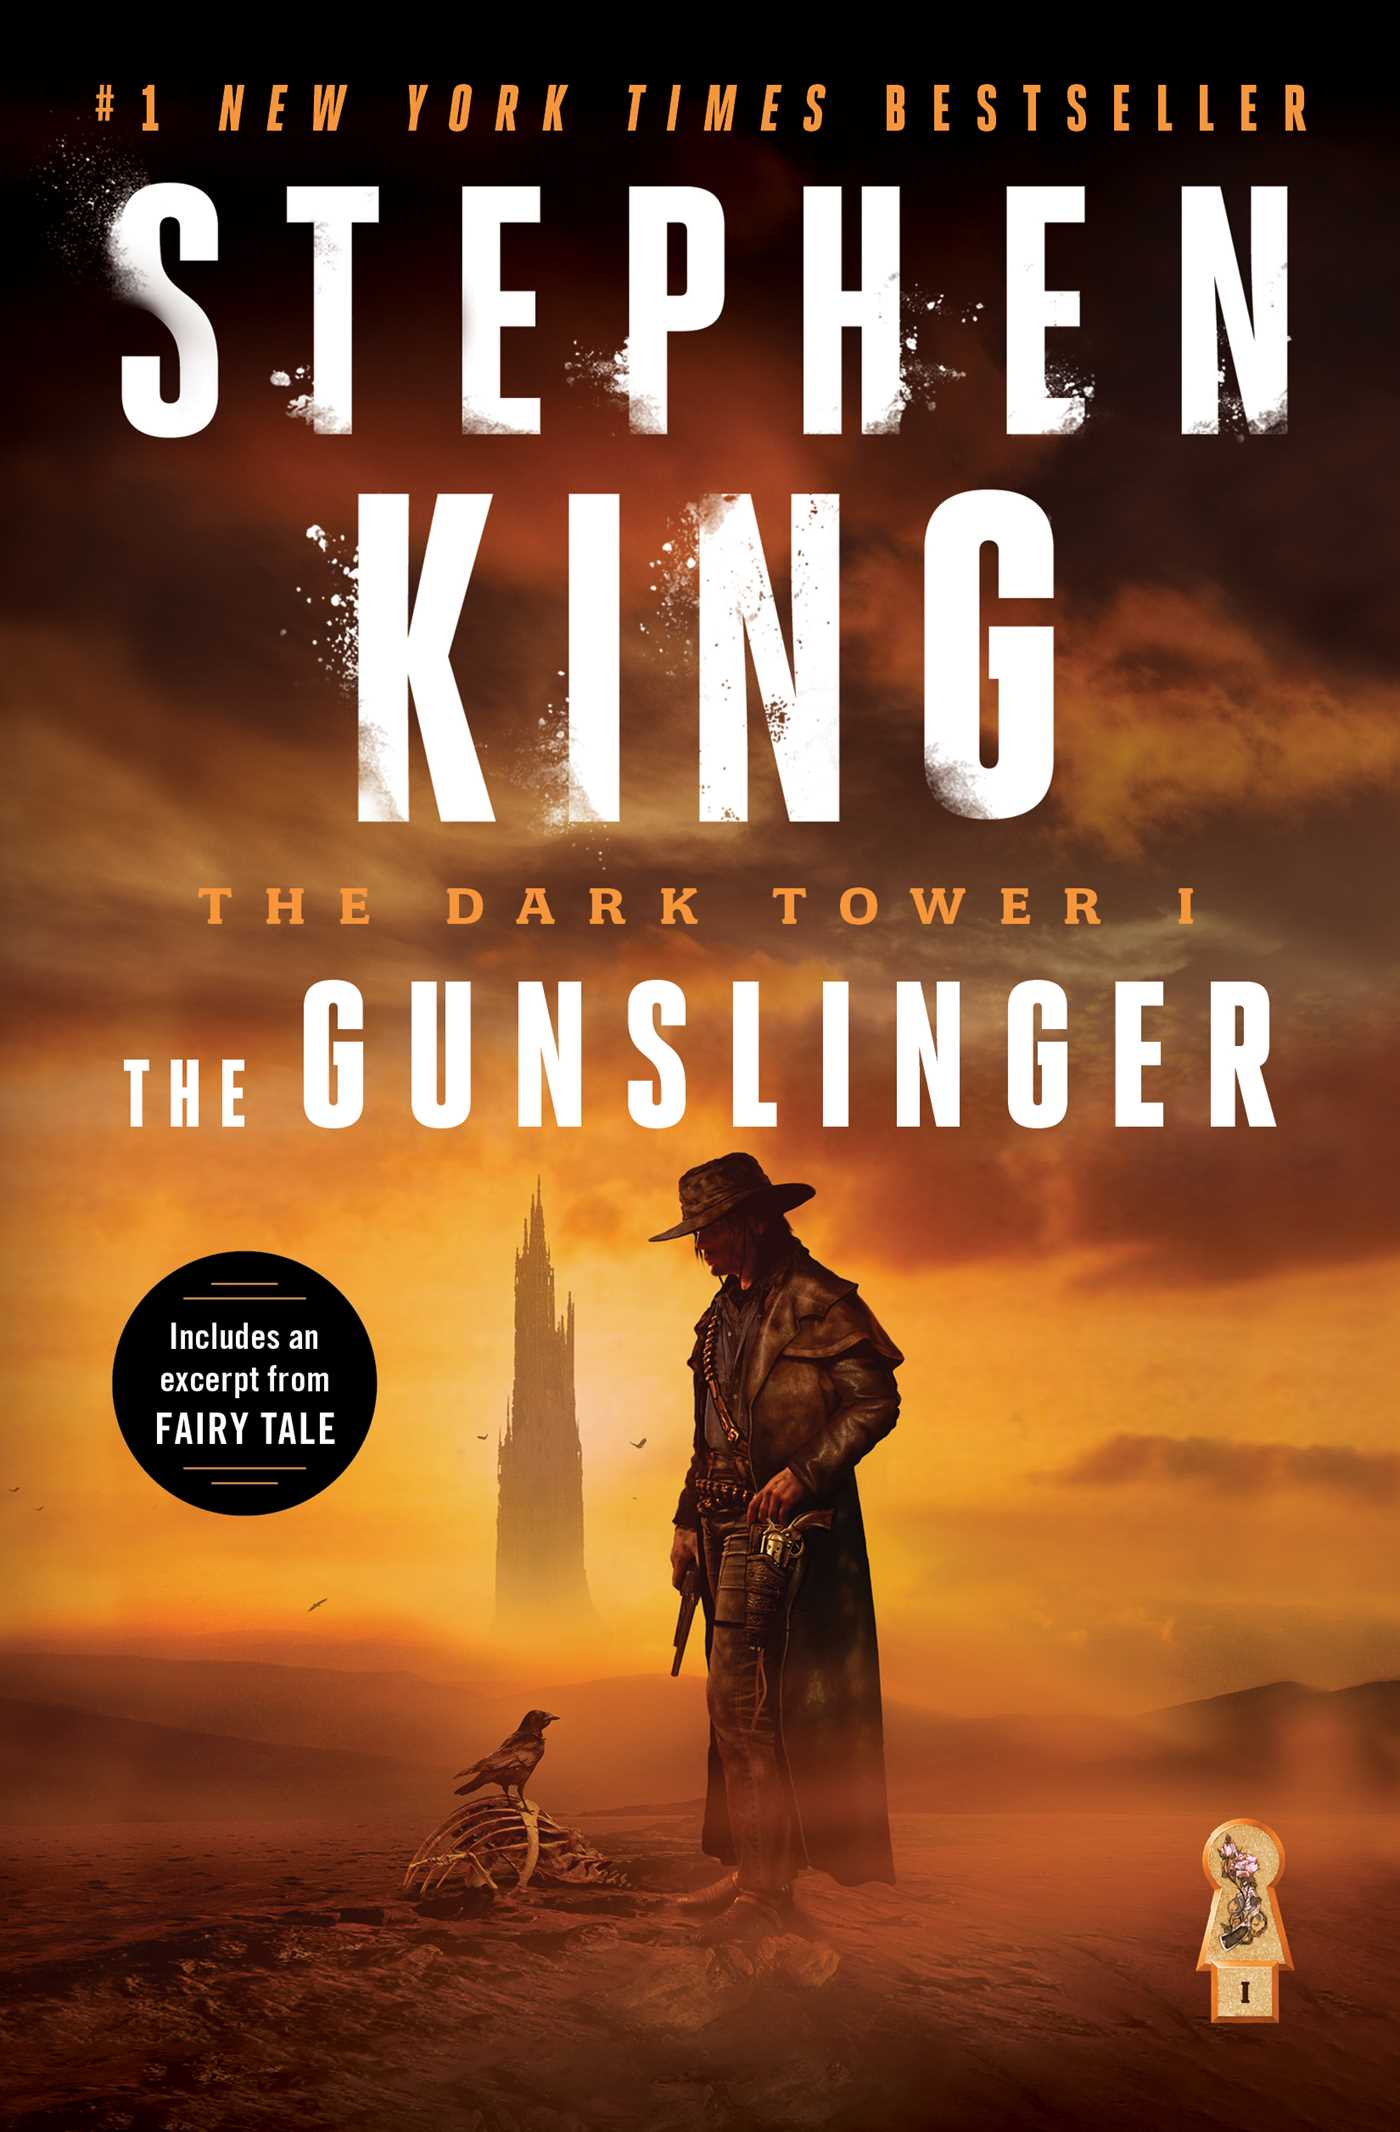 The Dark Tower I The Gunslinger